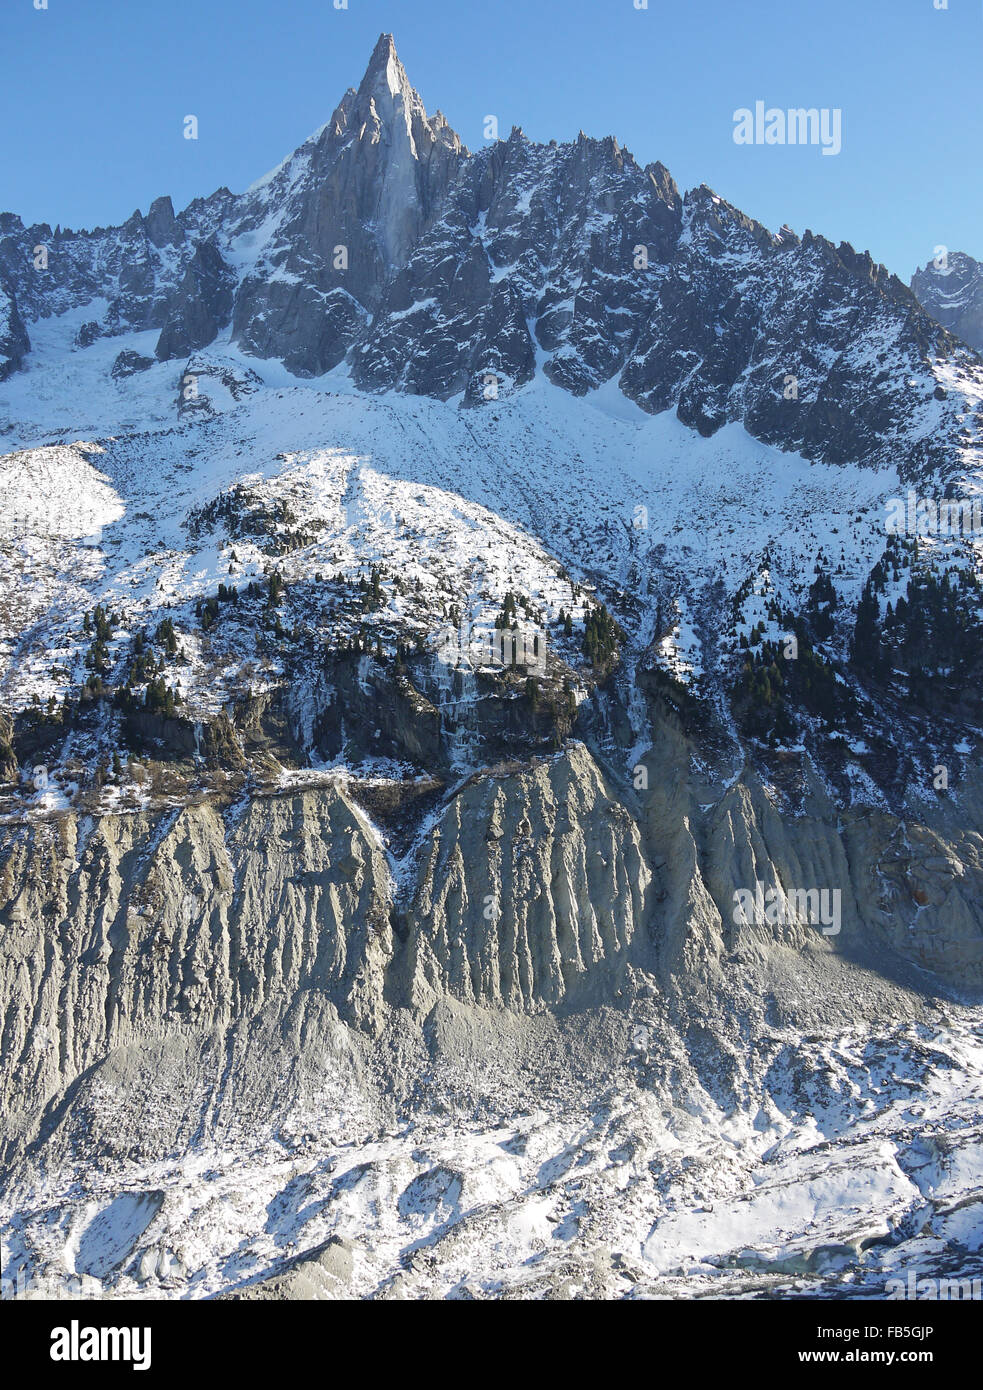 Le Dru mountain Chamonix showing the huge retreat of the glacier since 1890 as seen by the moraines - Stock Image